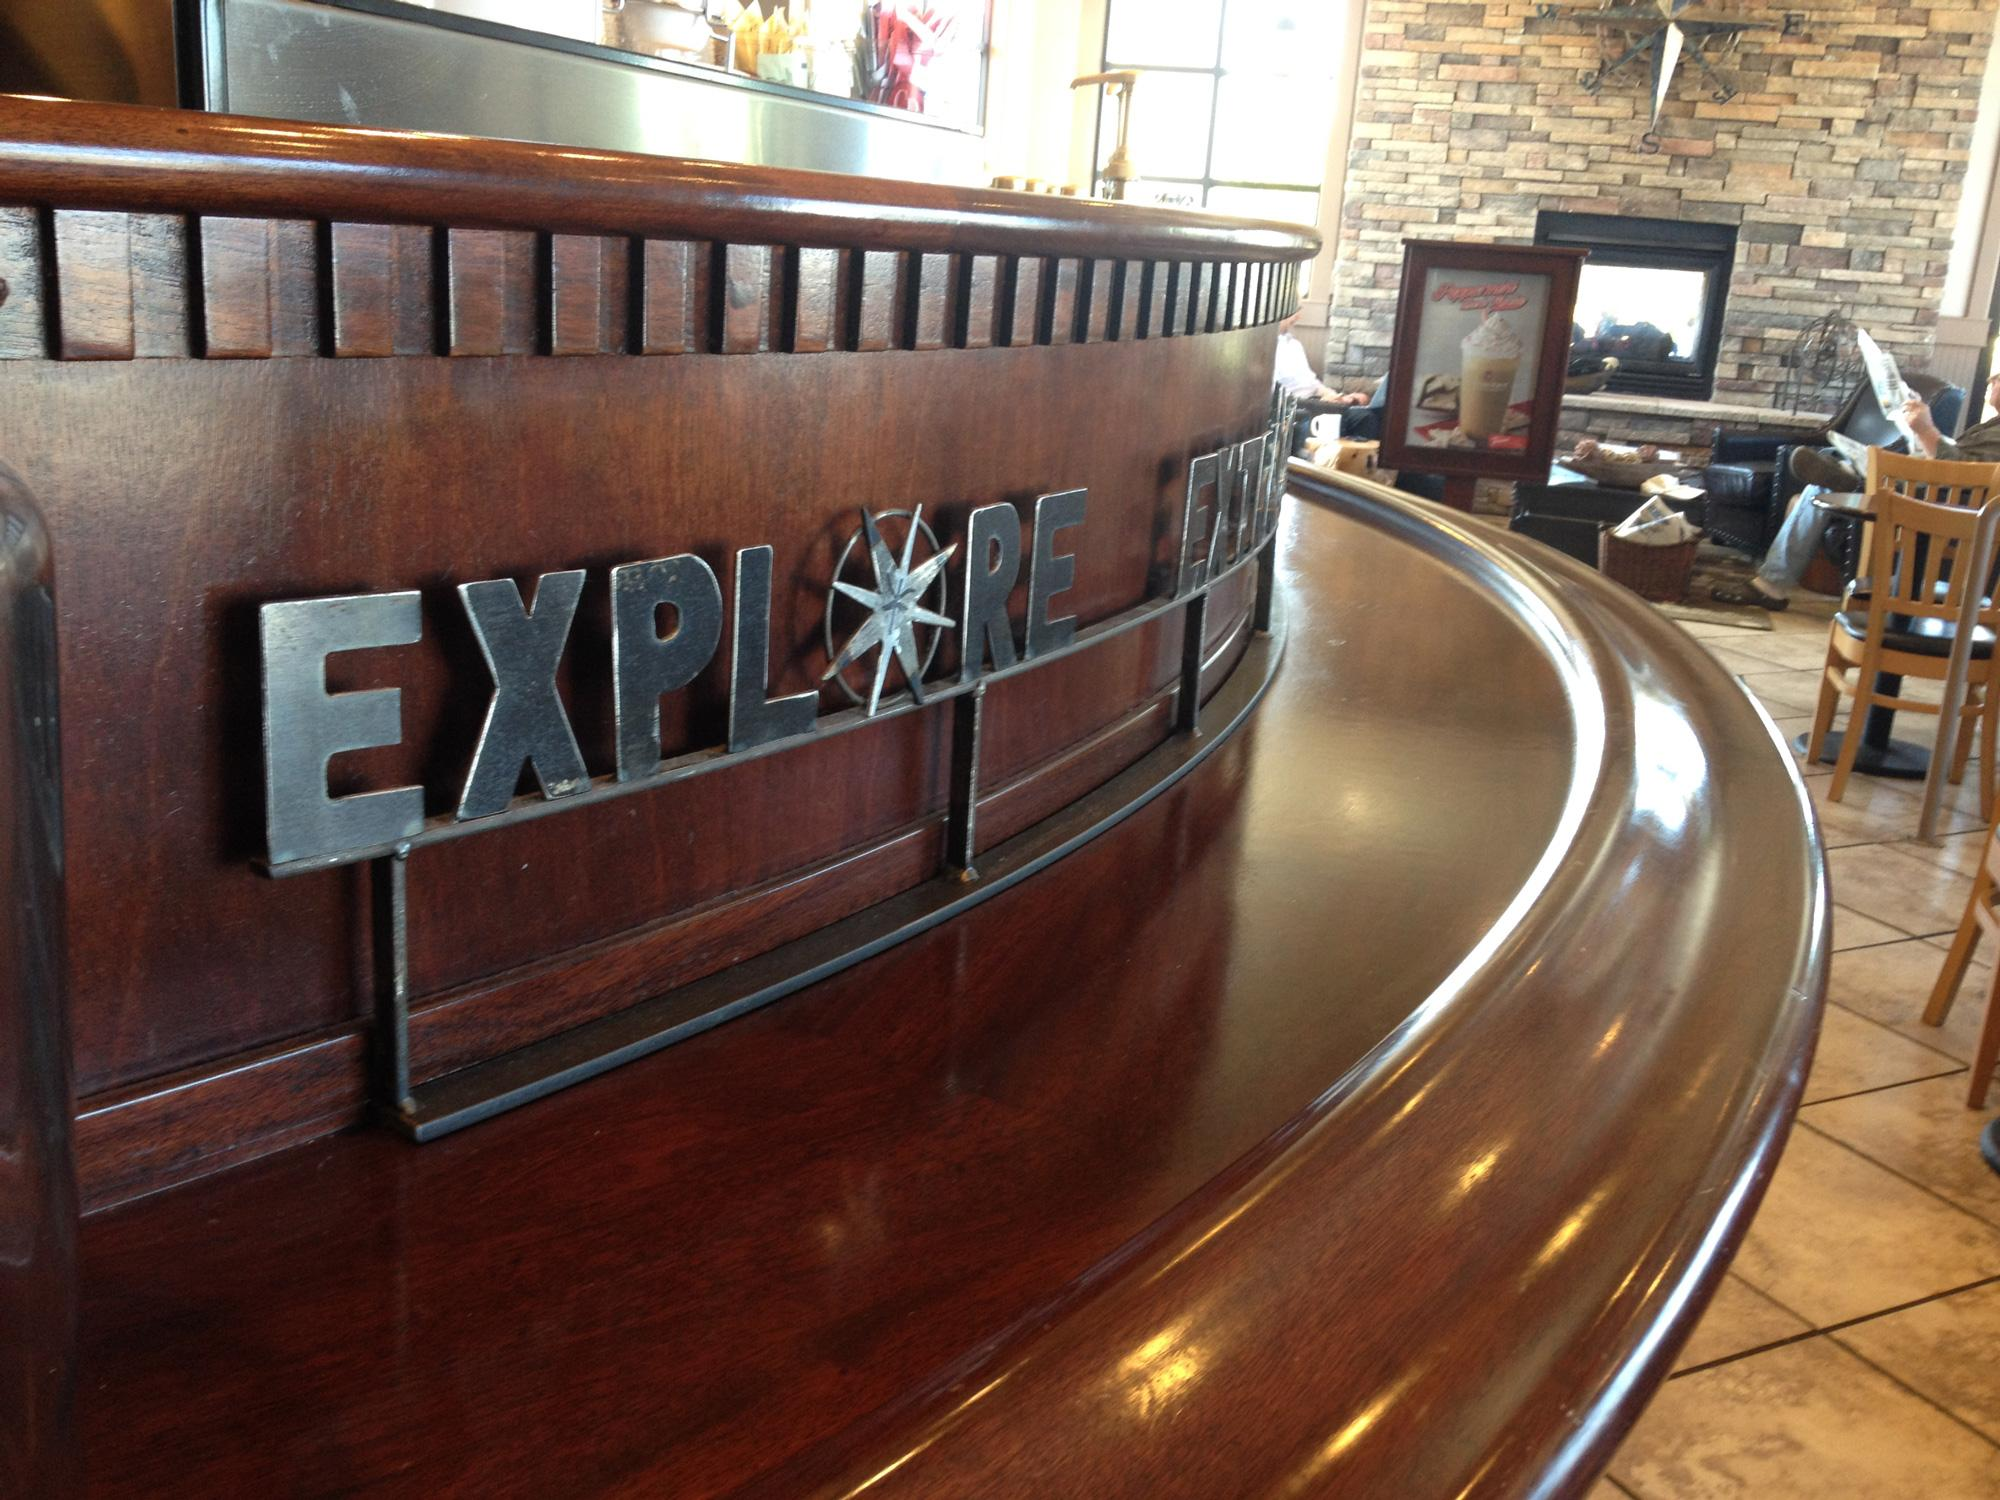 Metal Explore Extraordinary sign at flagship Lacey coffee shop